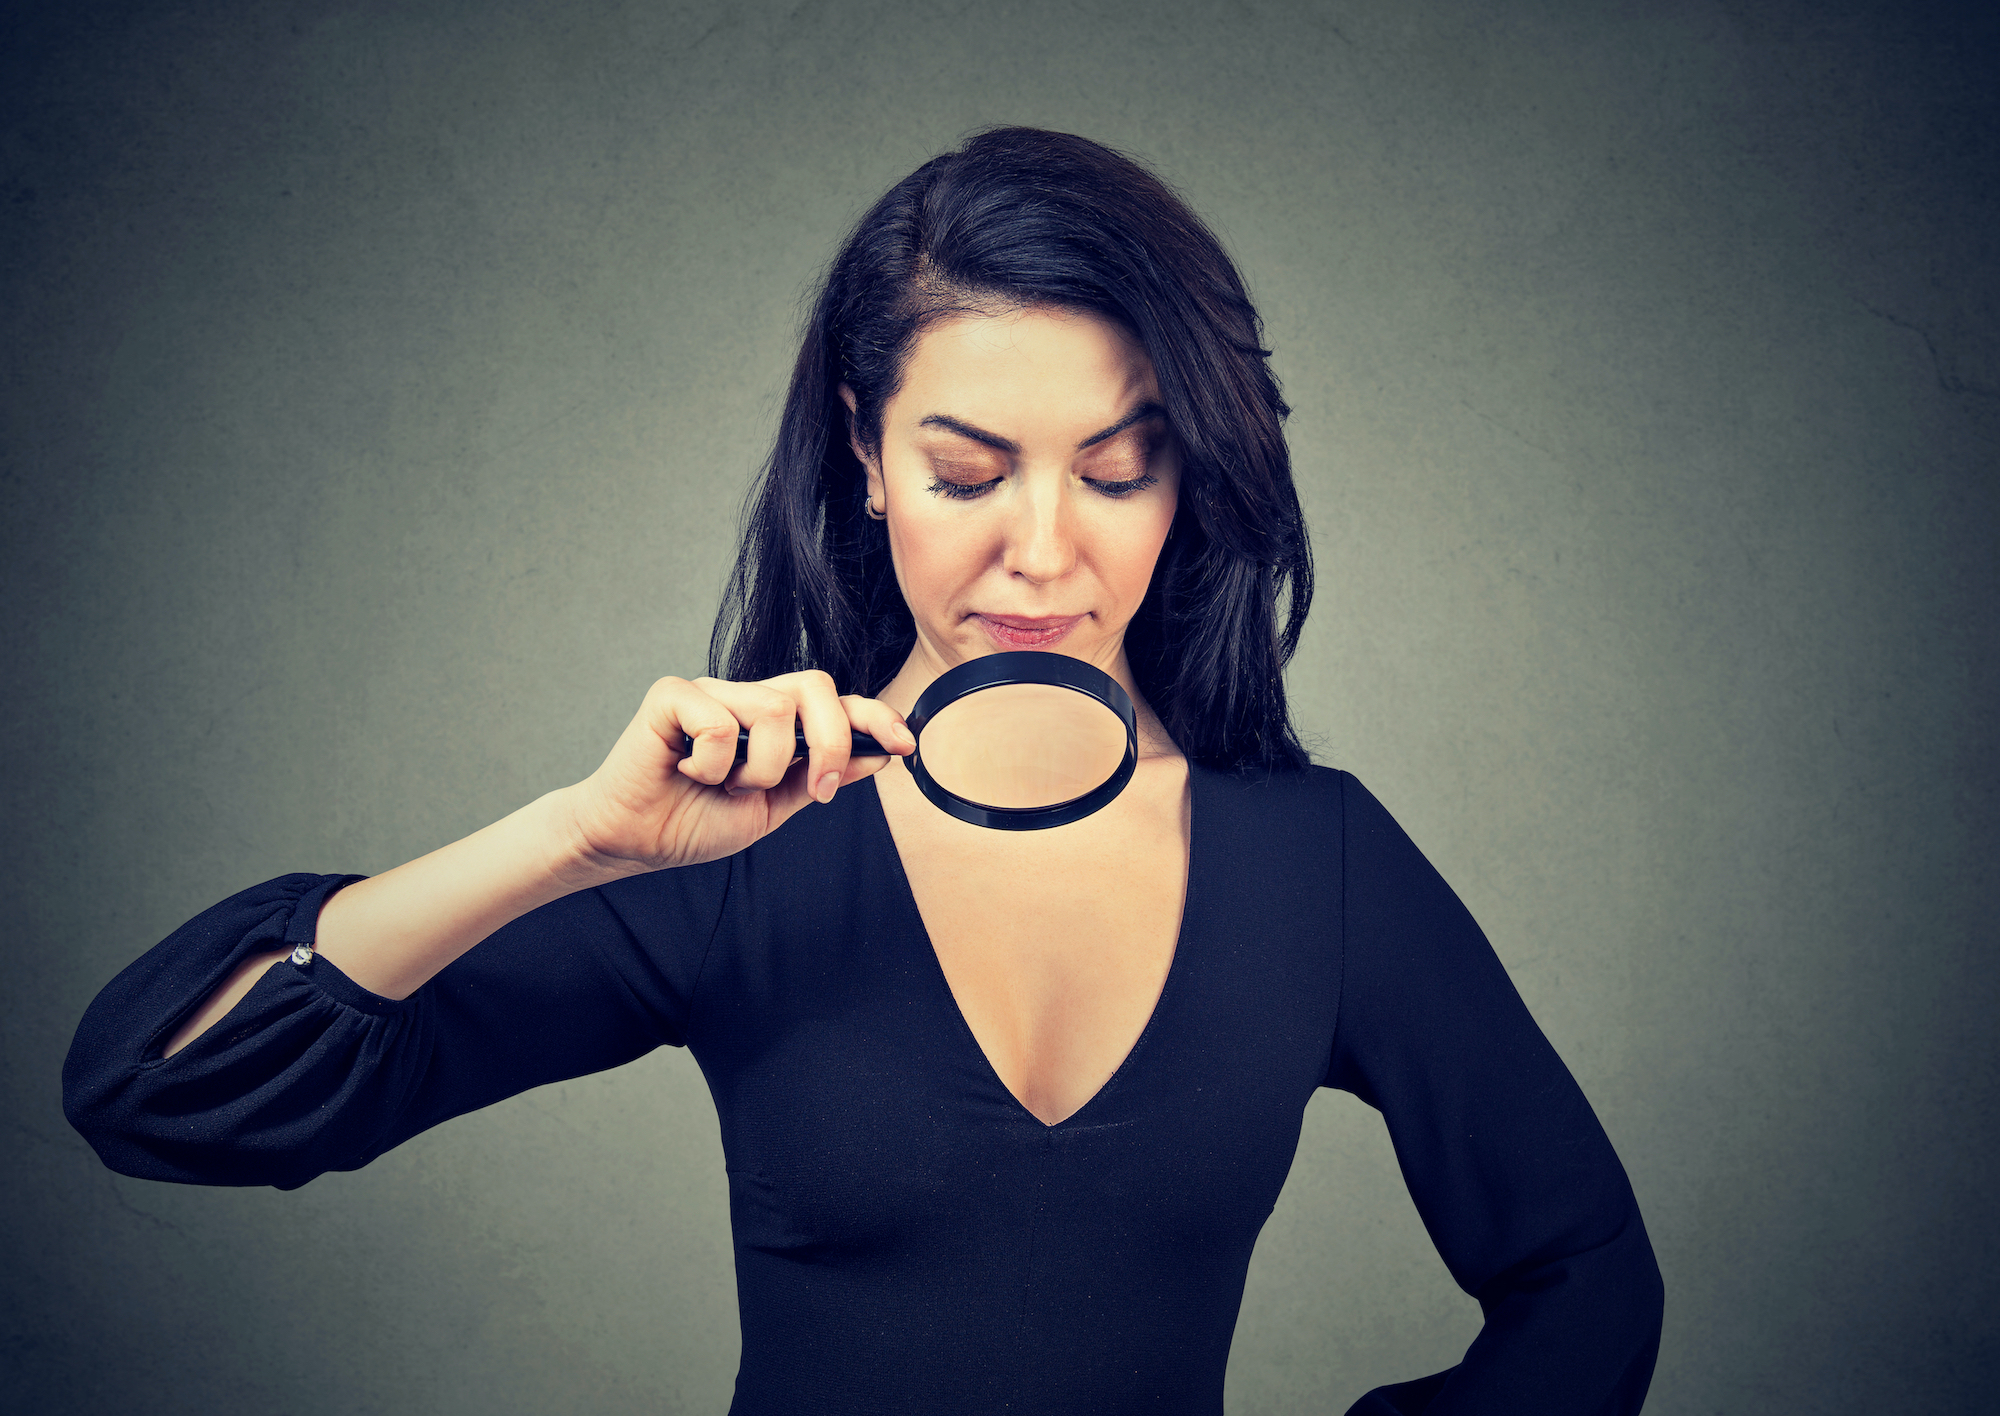 Young woman looking at her breasts through magnifying glass